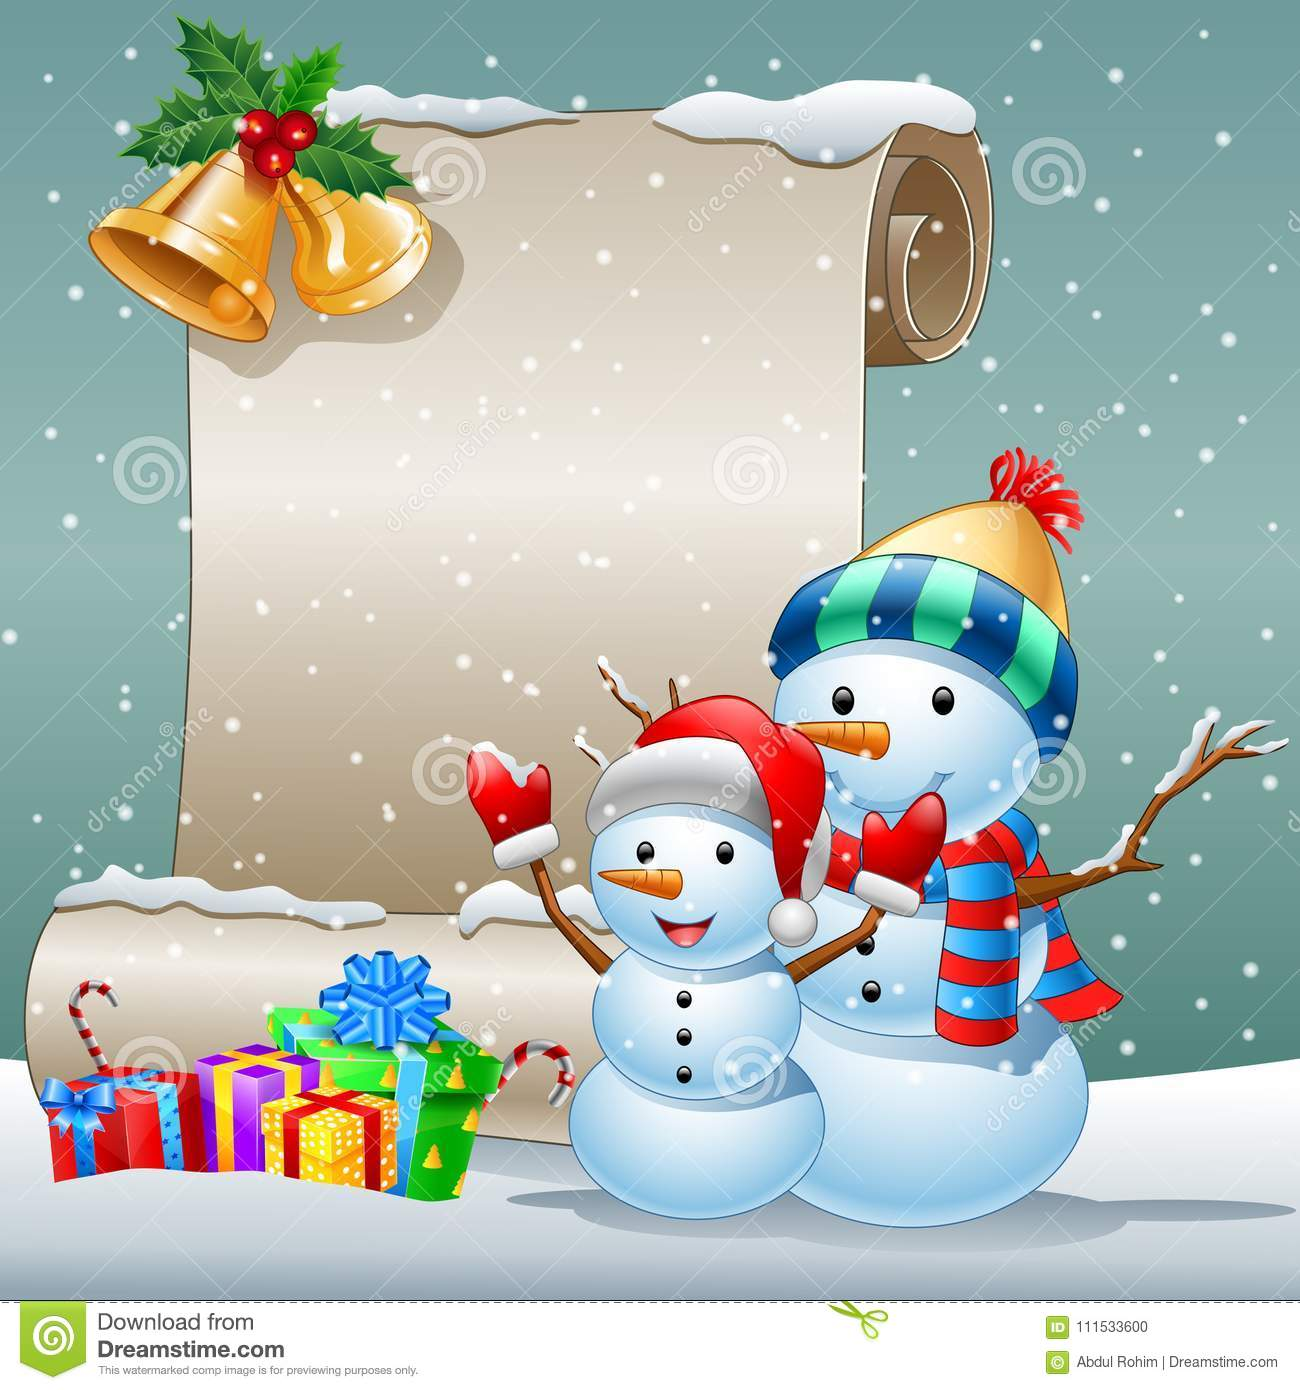 Christmas Card With A Snowman And Gift Boxes On Winter Background